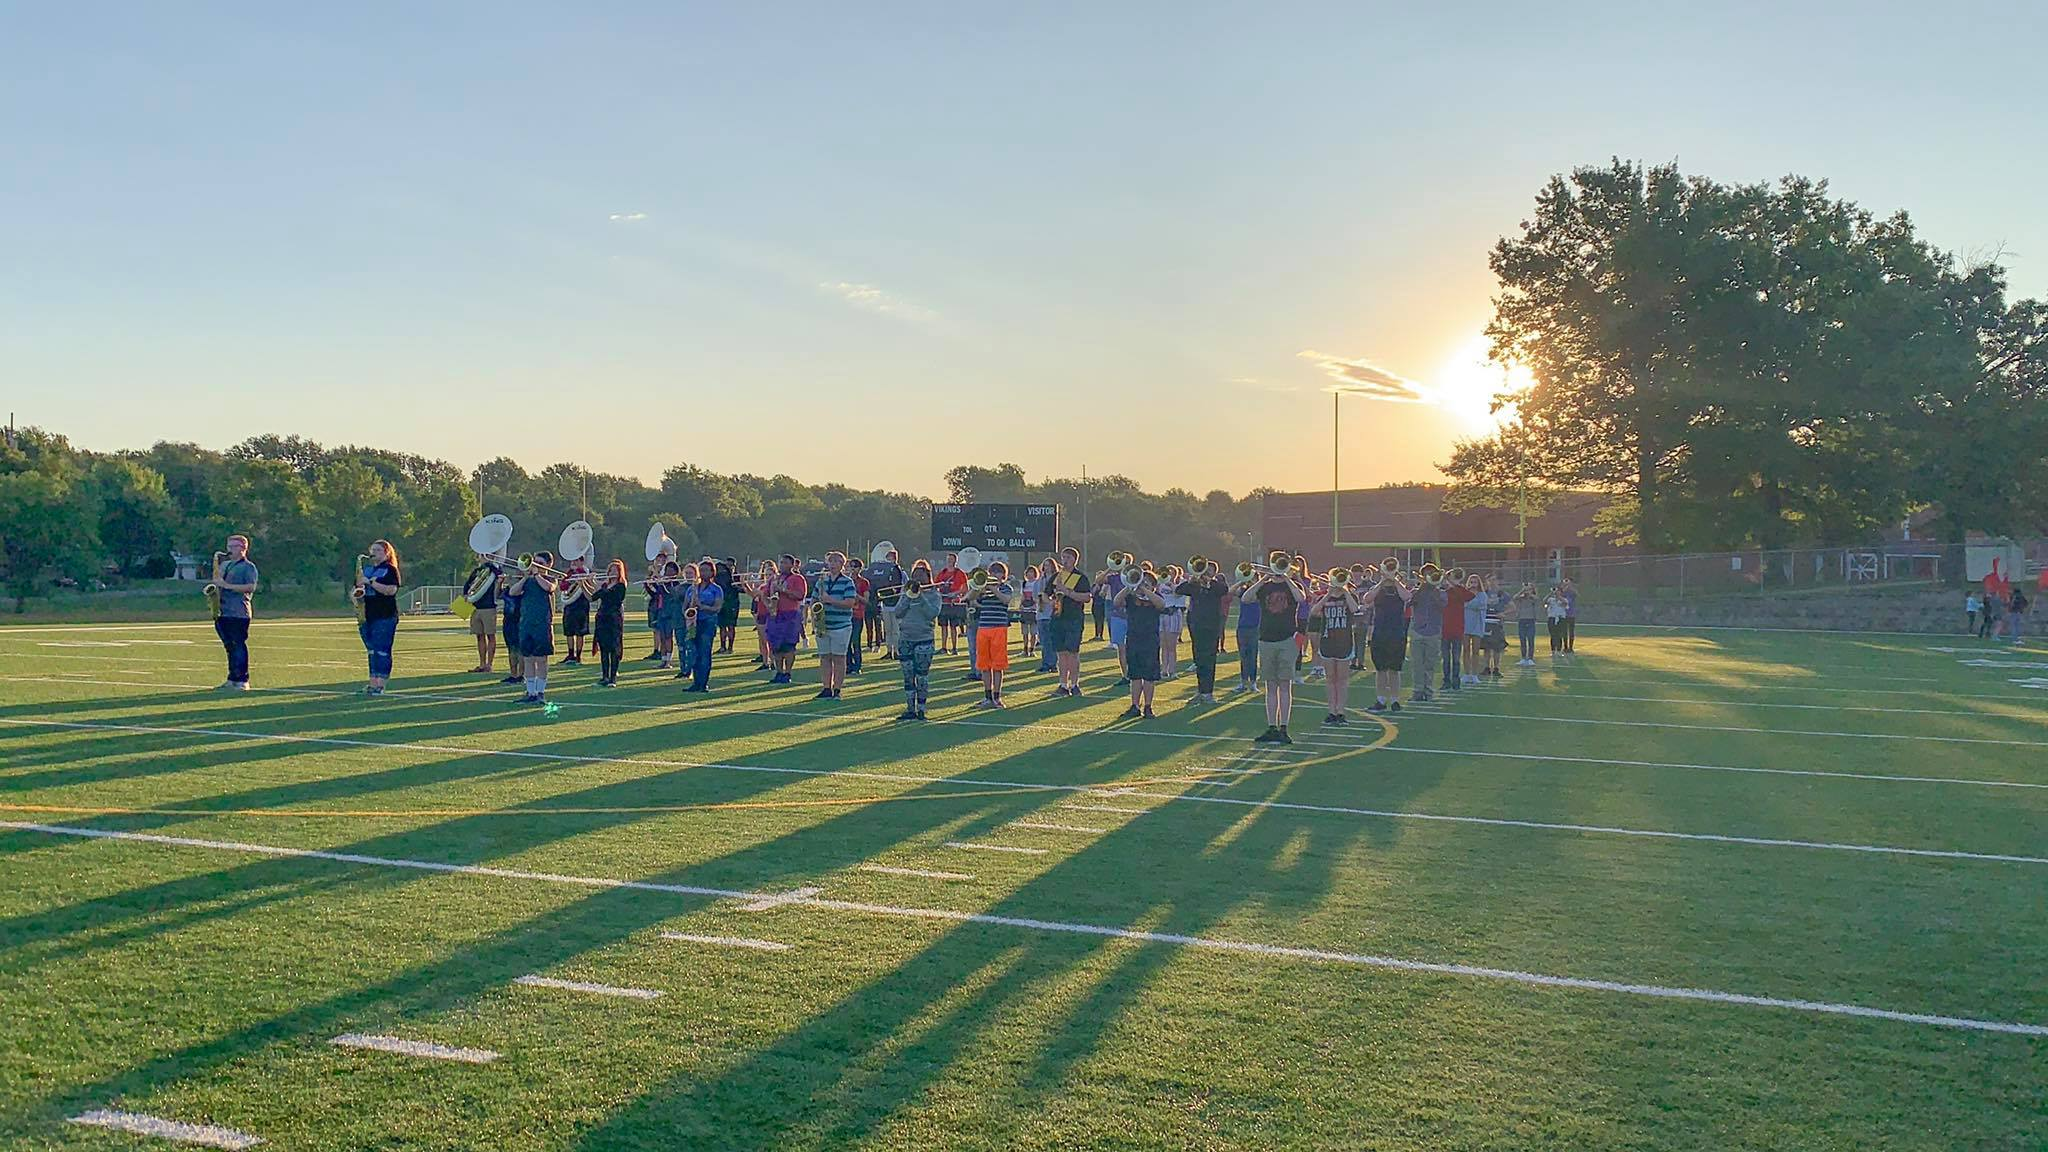 Band Rehearsing on the Field